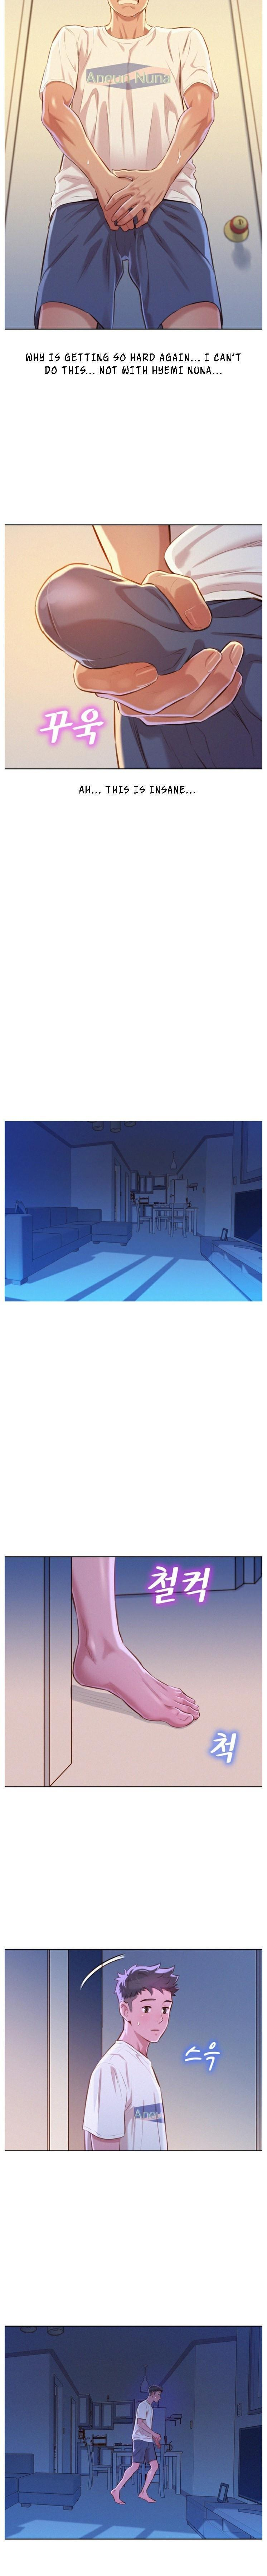 What do you Take me For? Ch.70/? 608